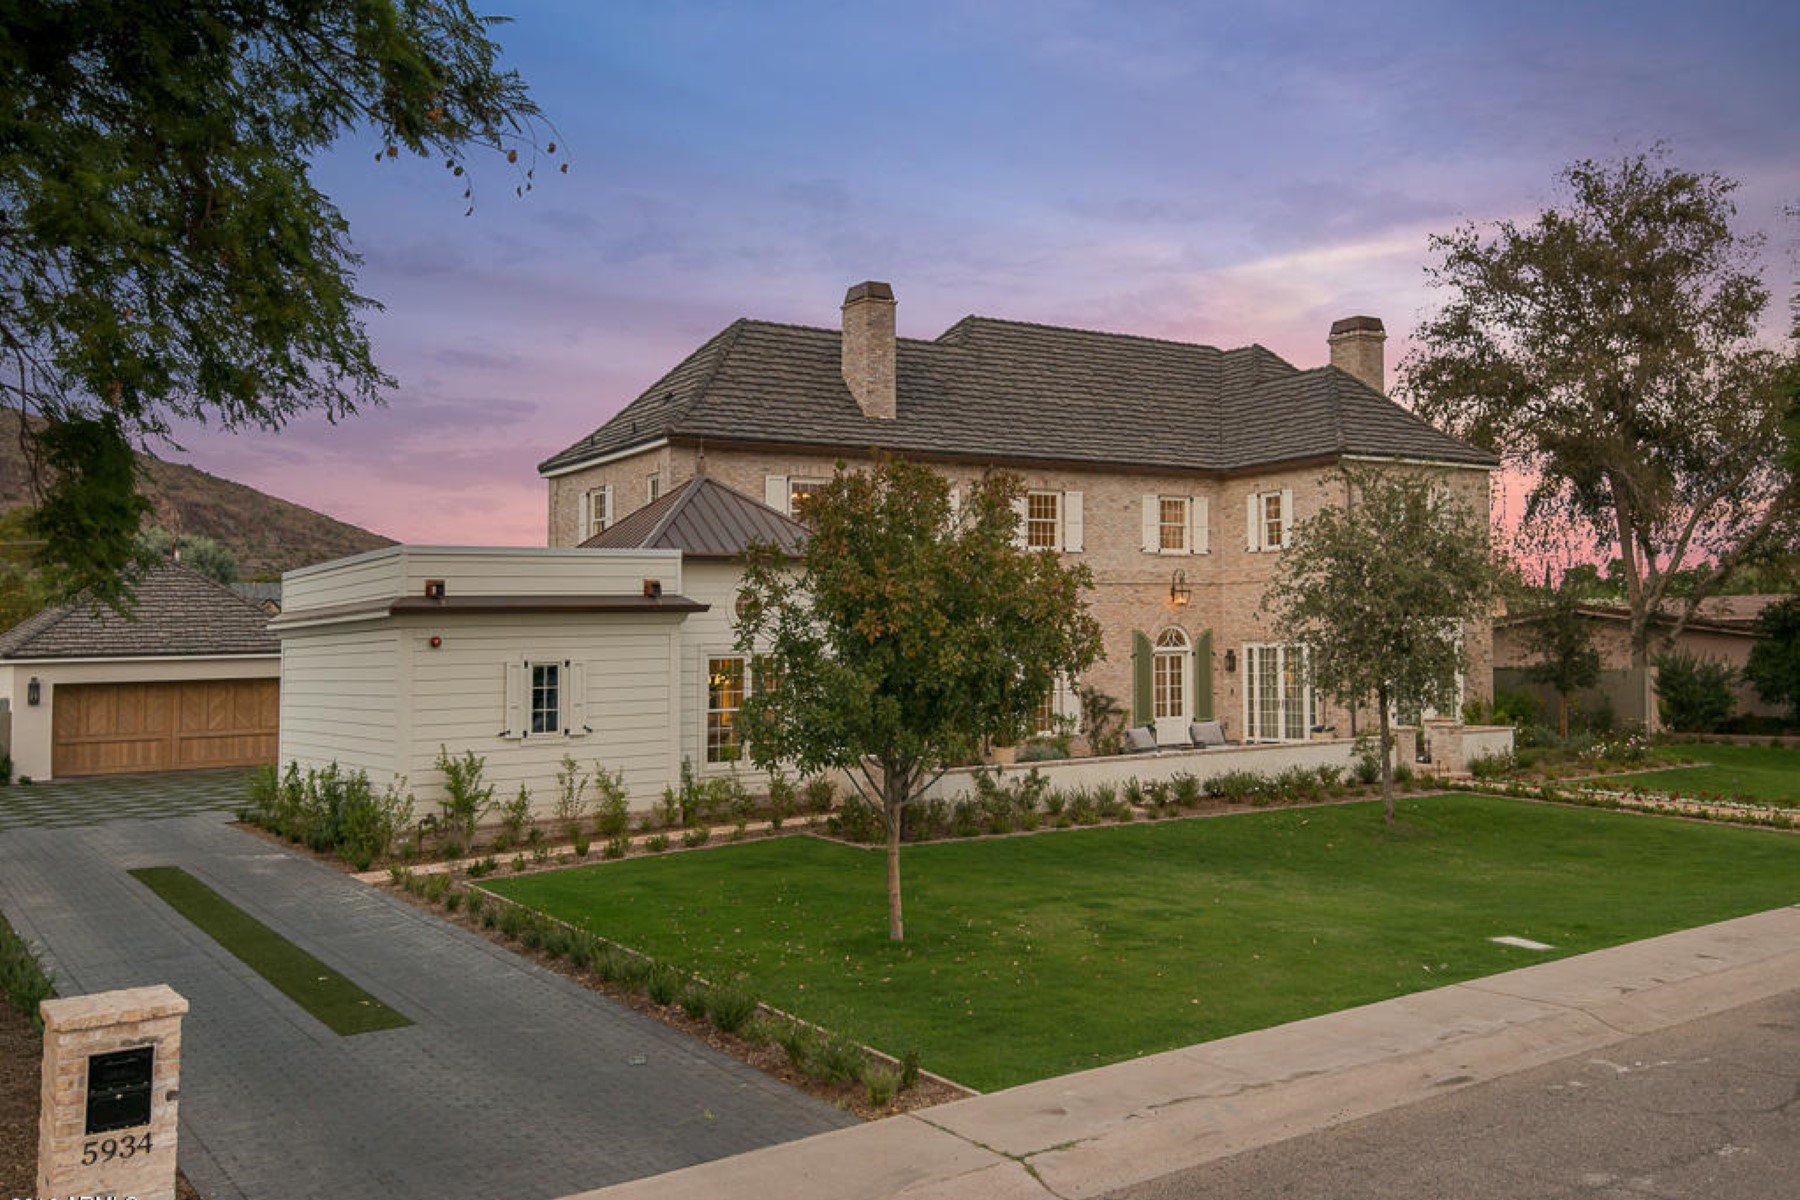 Single Family Home for Sale at Fantastic Opportunity on one of Best Lots in Arcadia 5934 E Calle Del Norte Phoenix, Arizona, 85018 United States